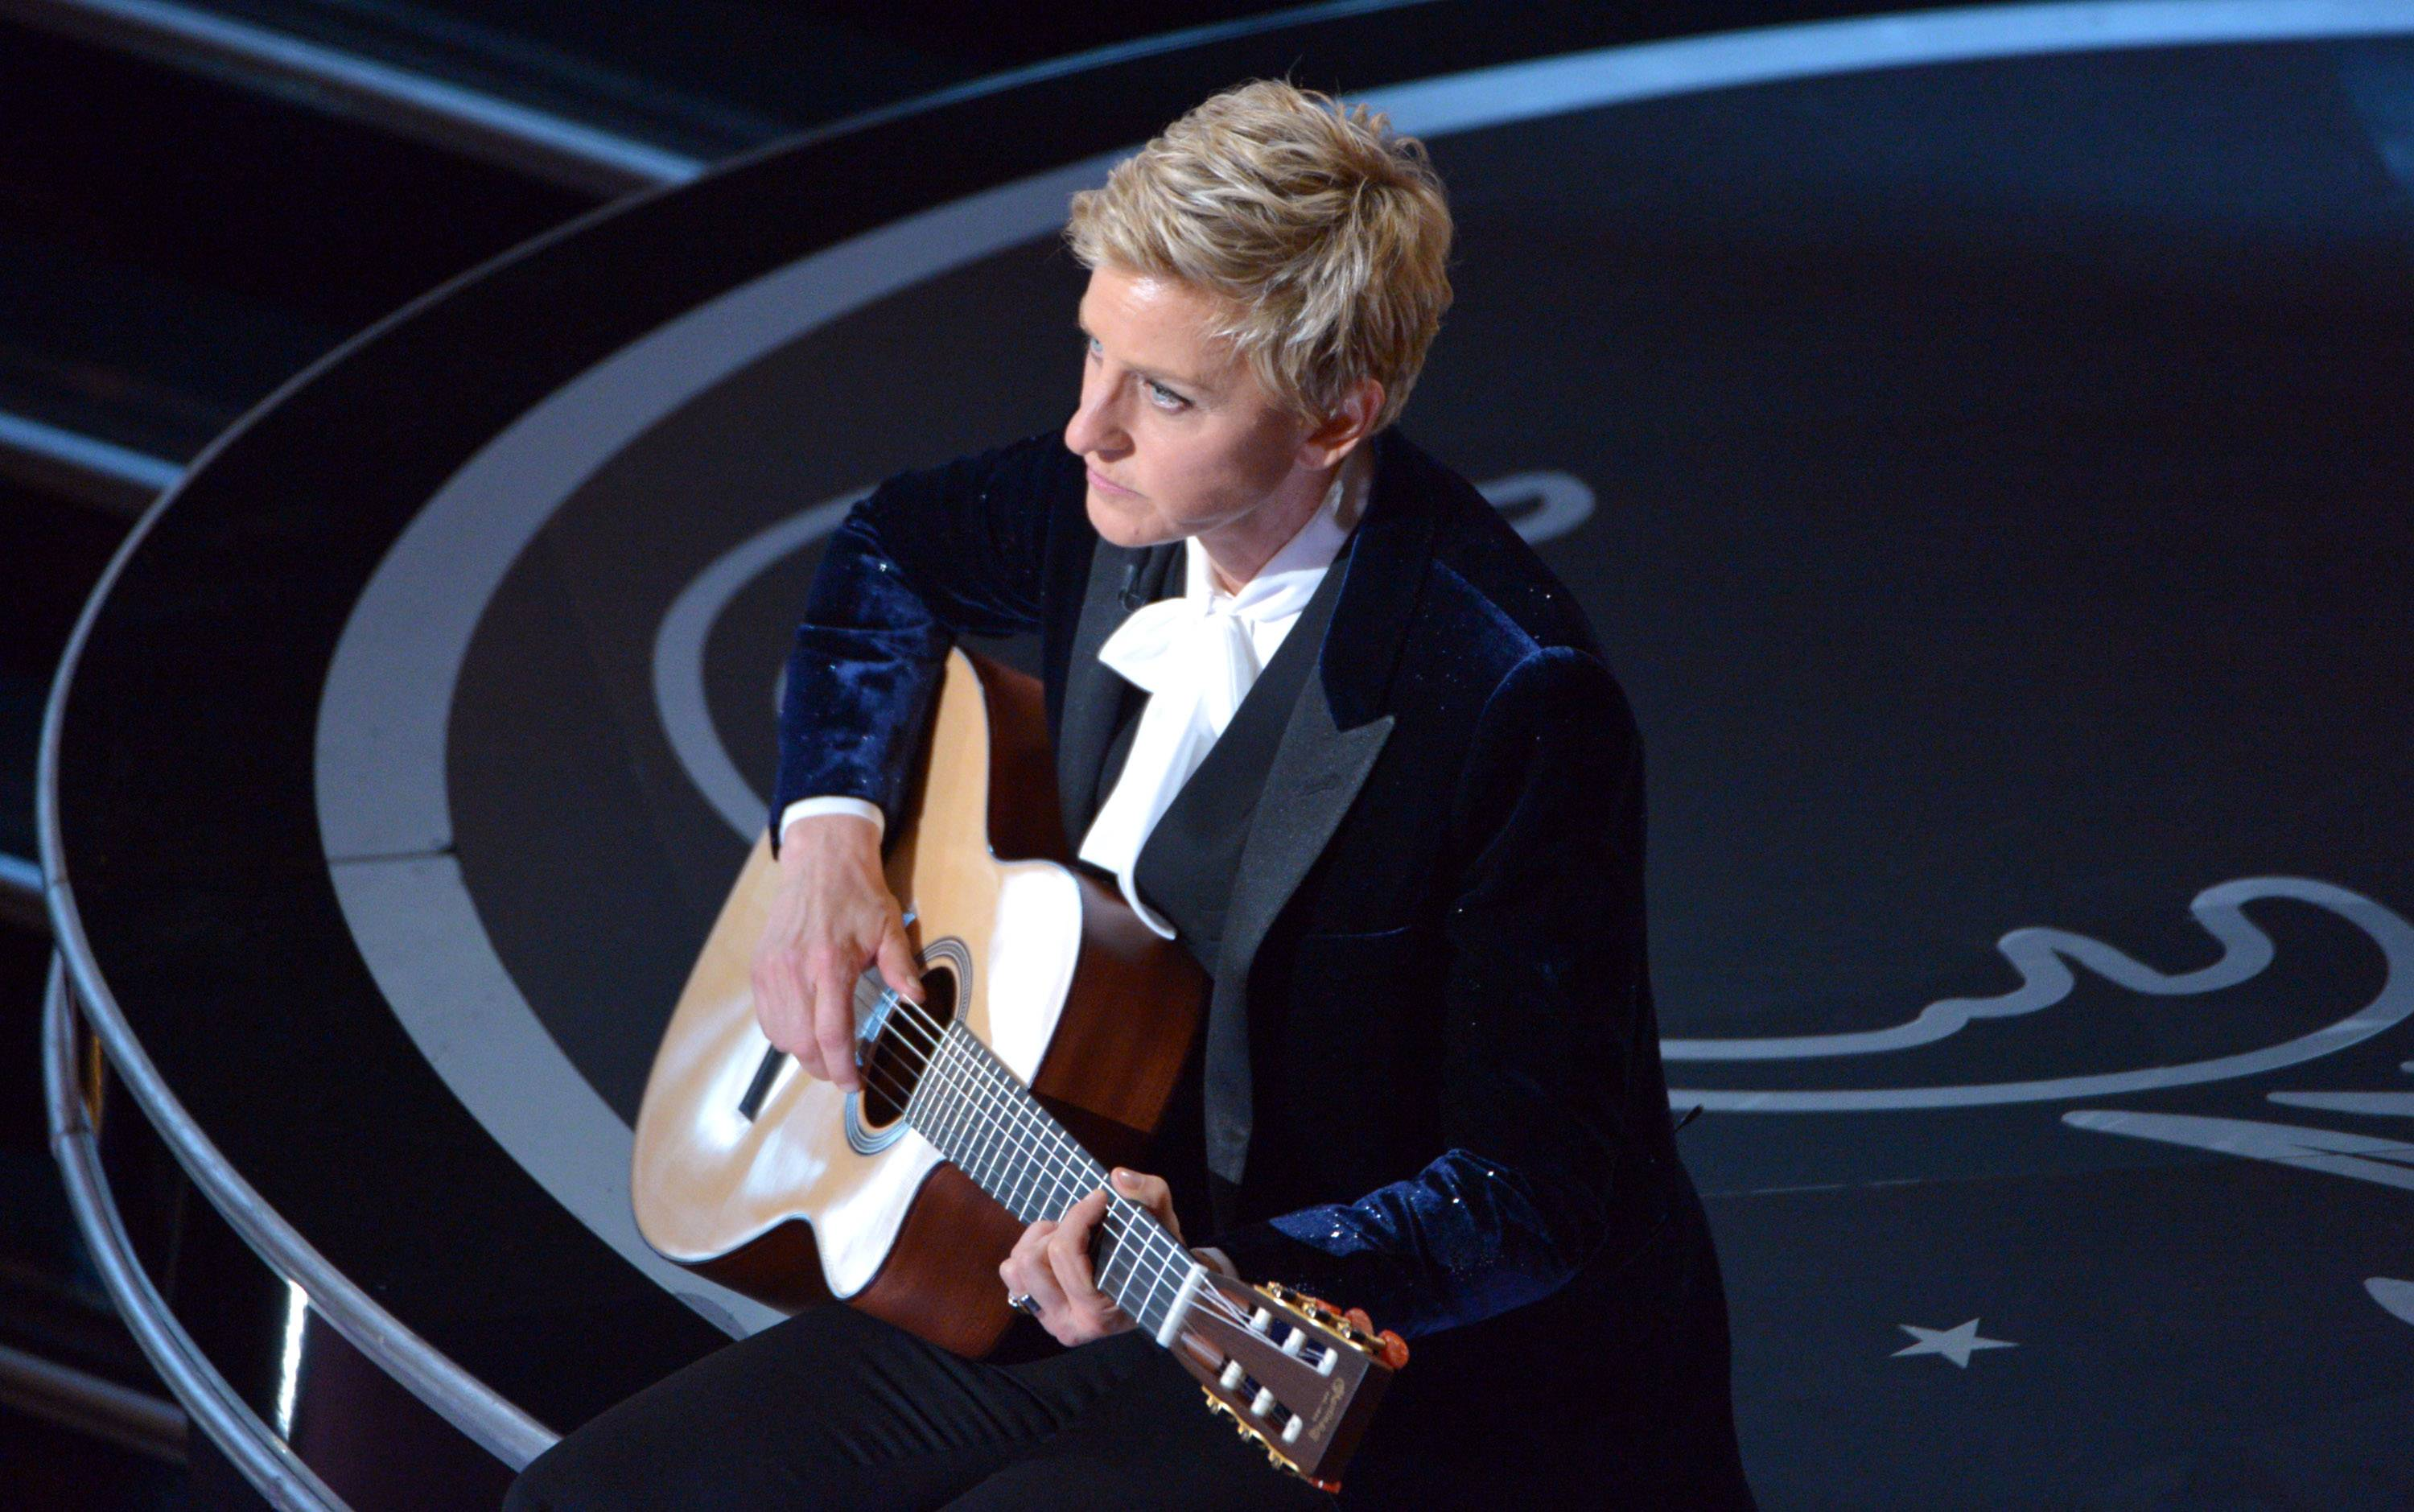 Ellen DeGeneres performs during the Oscars.